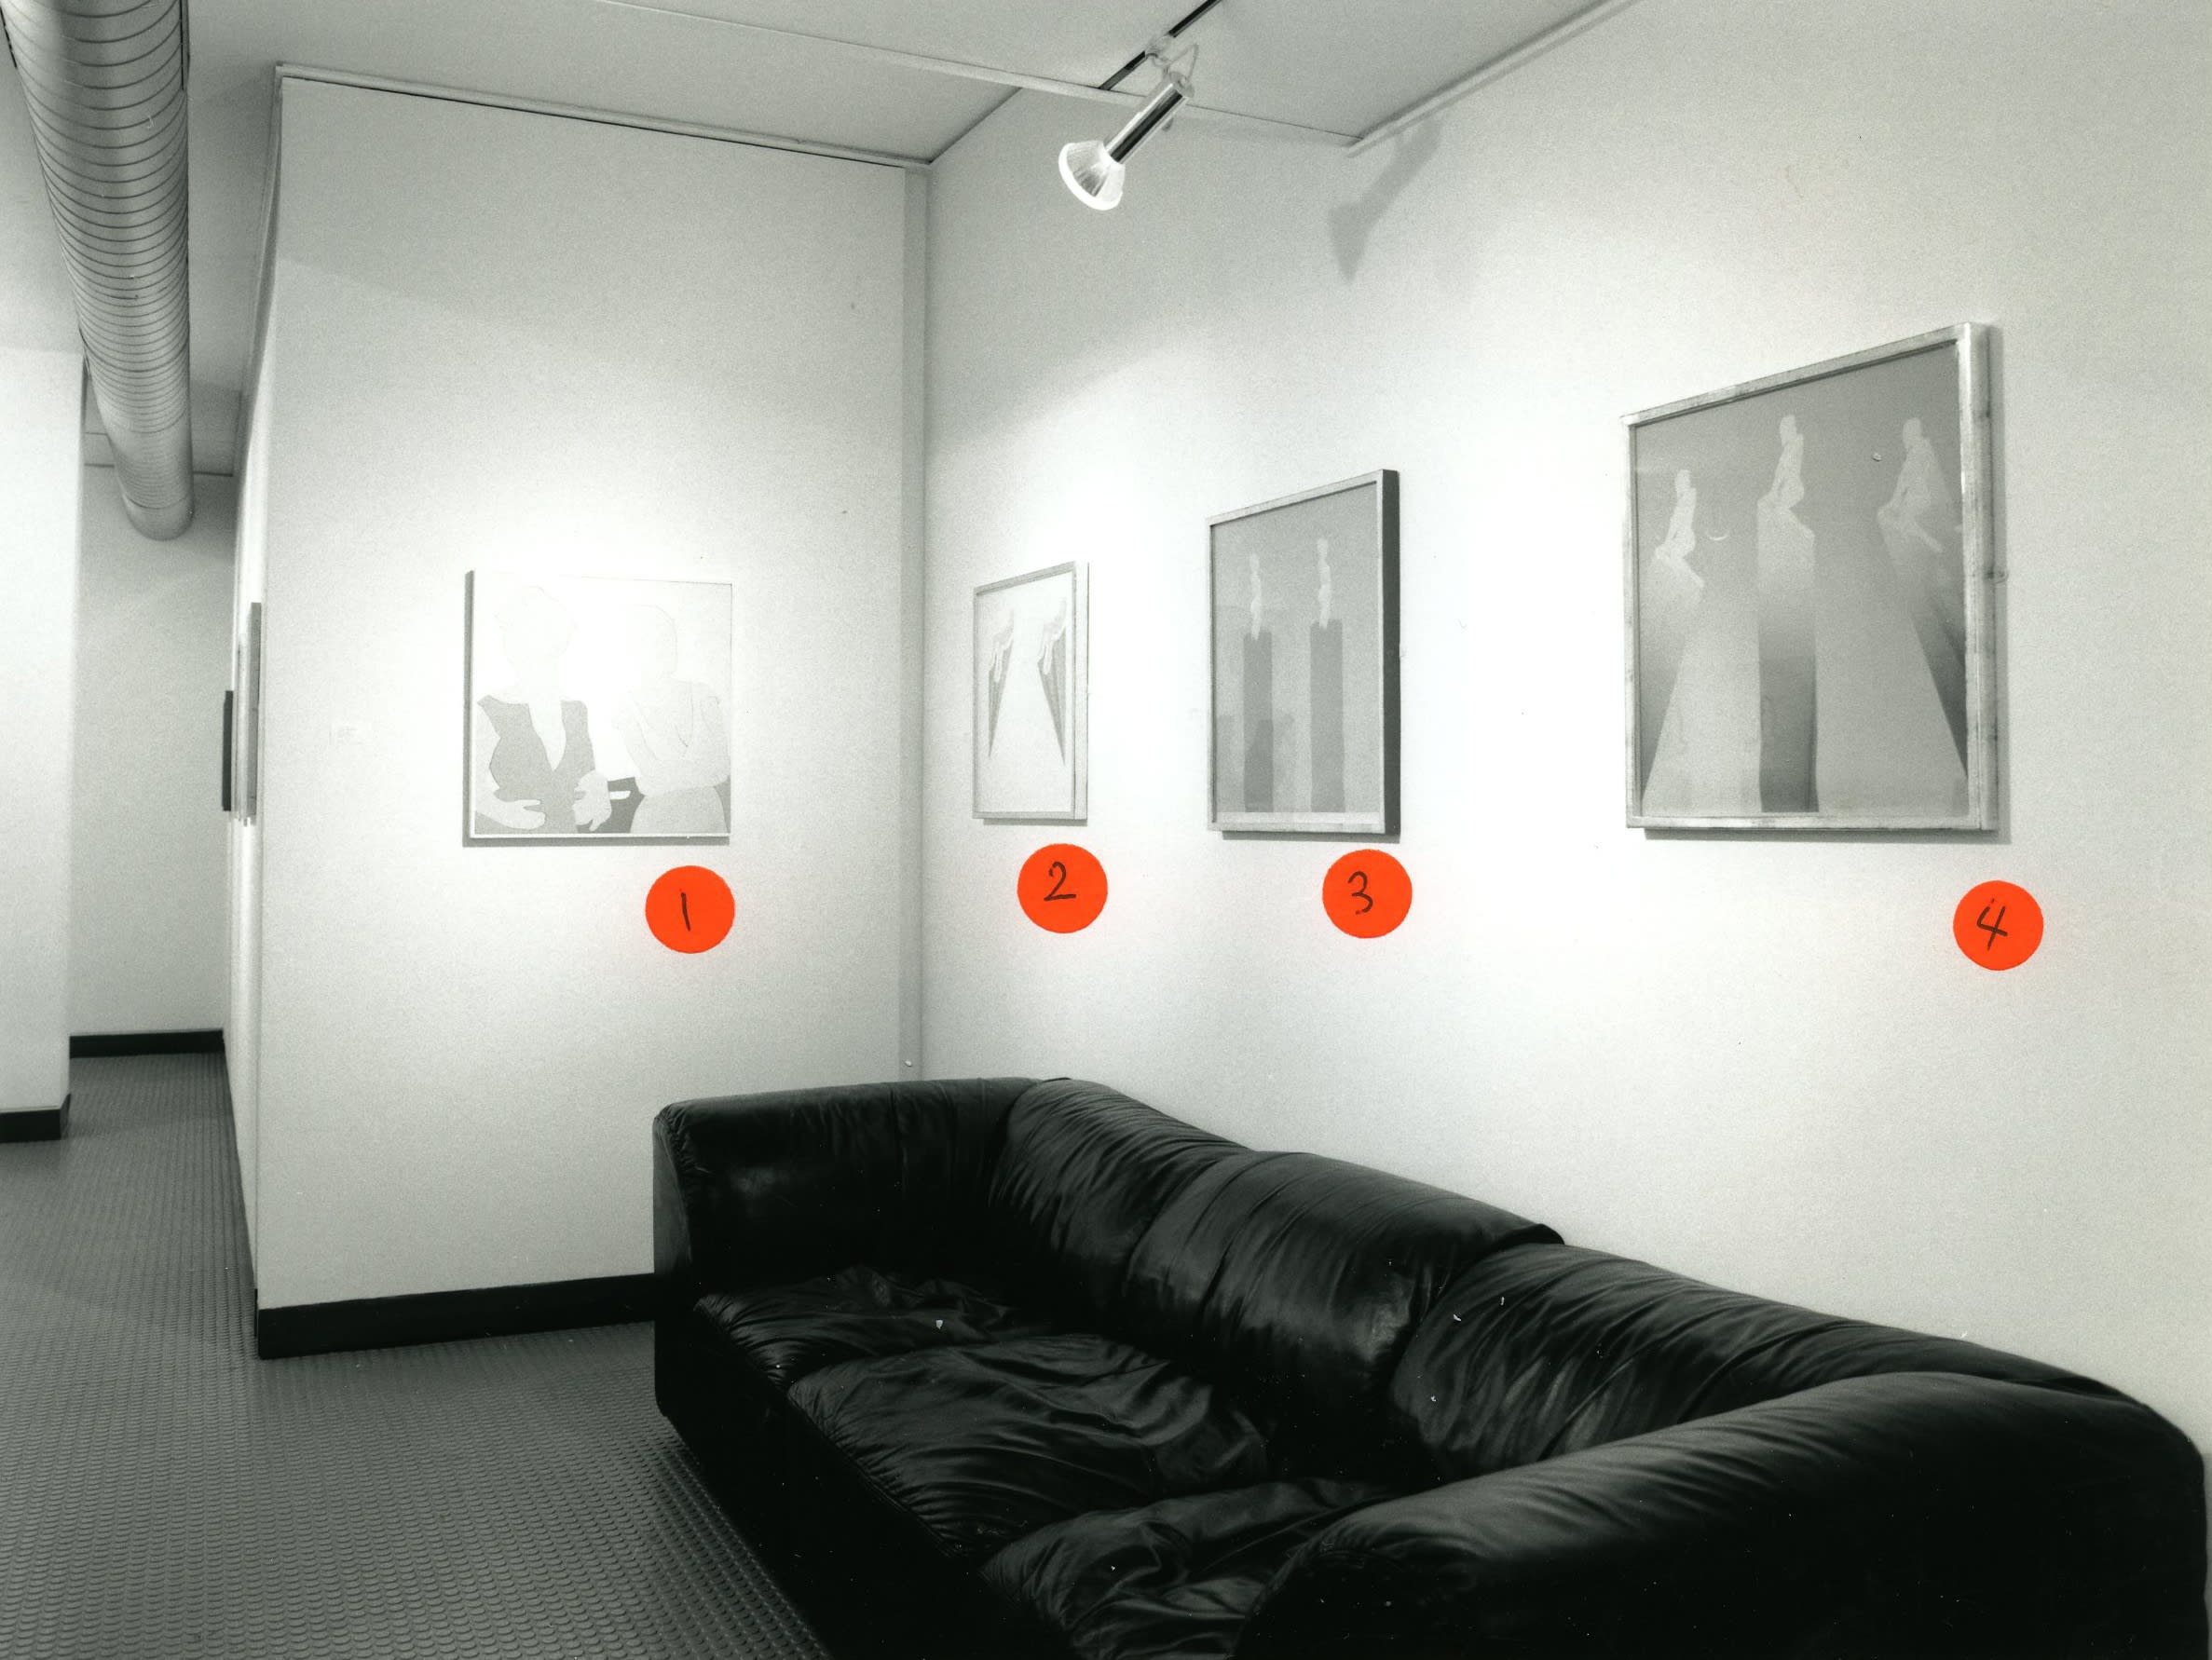 """<span class=""""link fancybox-details-link""""><a href=""""/exhibitions/156/works/image_standalone677/"""">View Detail Page</a></span><p>ANTONY DONALDSON 